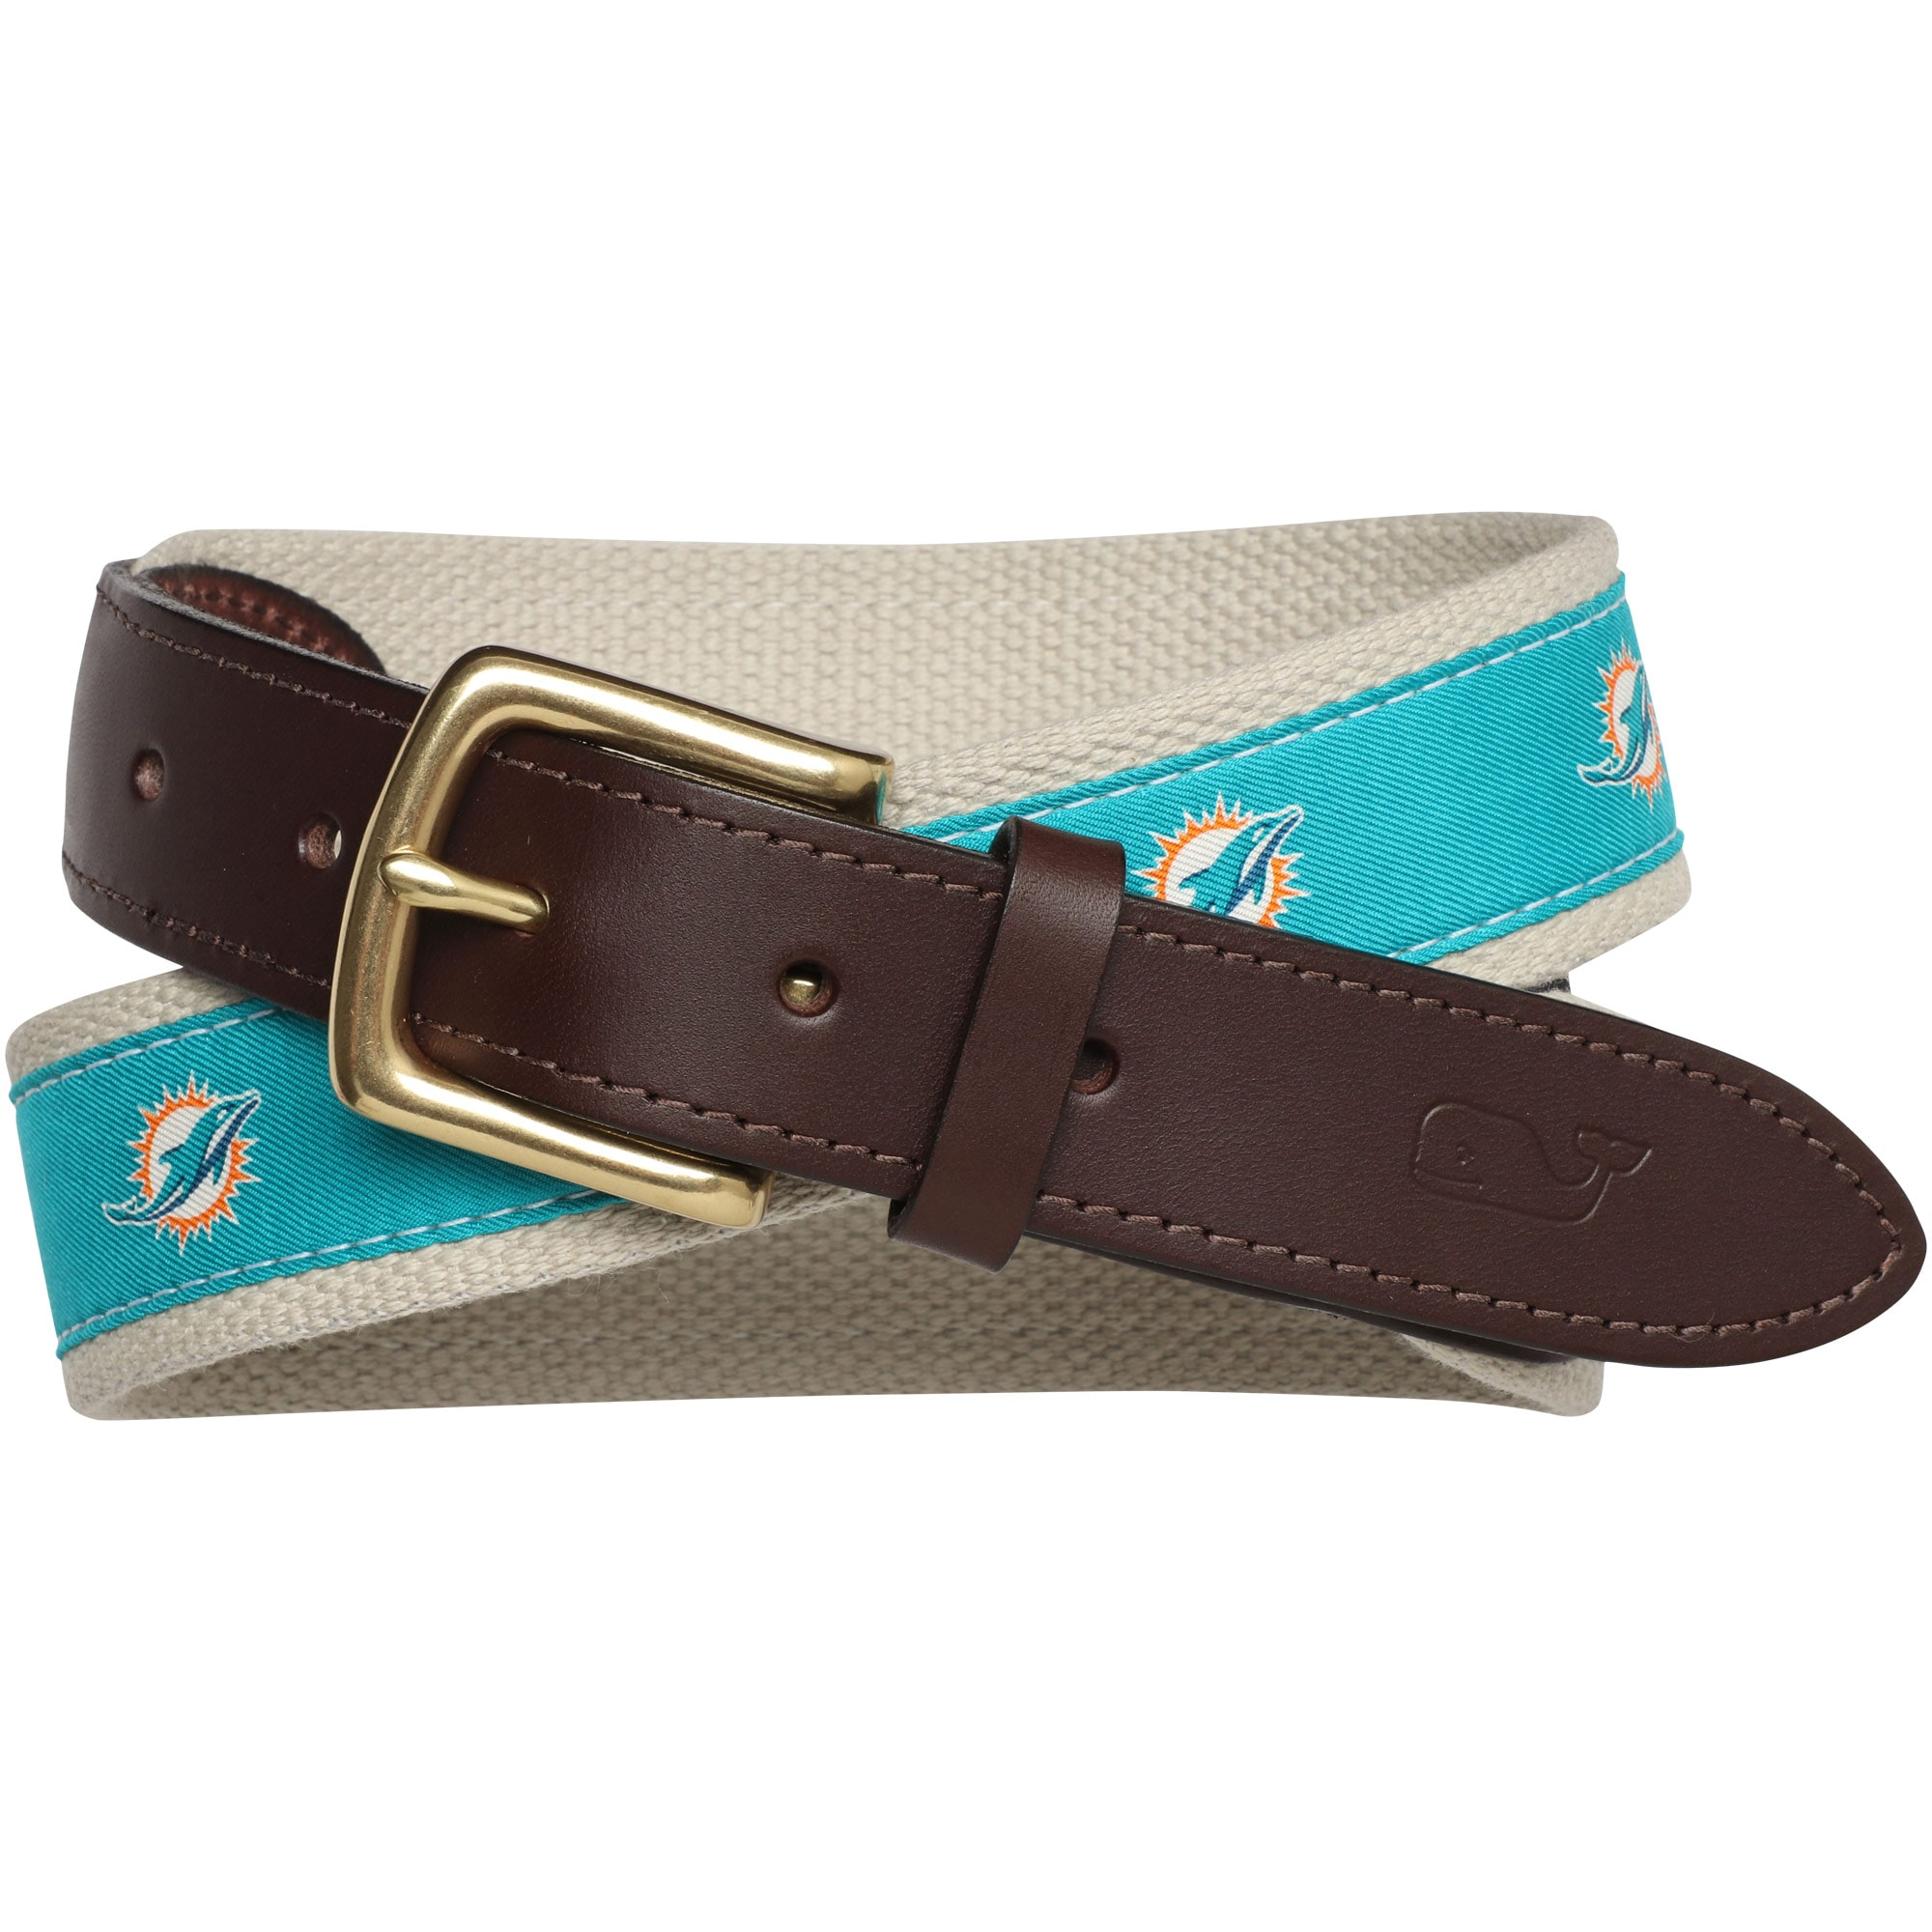 Miami Dolphins Vineyard Vines NFL Belt - Aqua